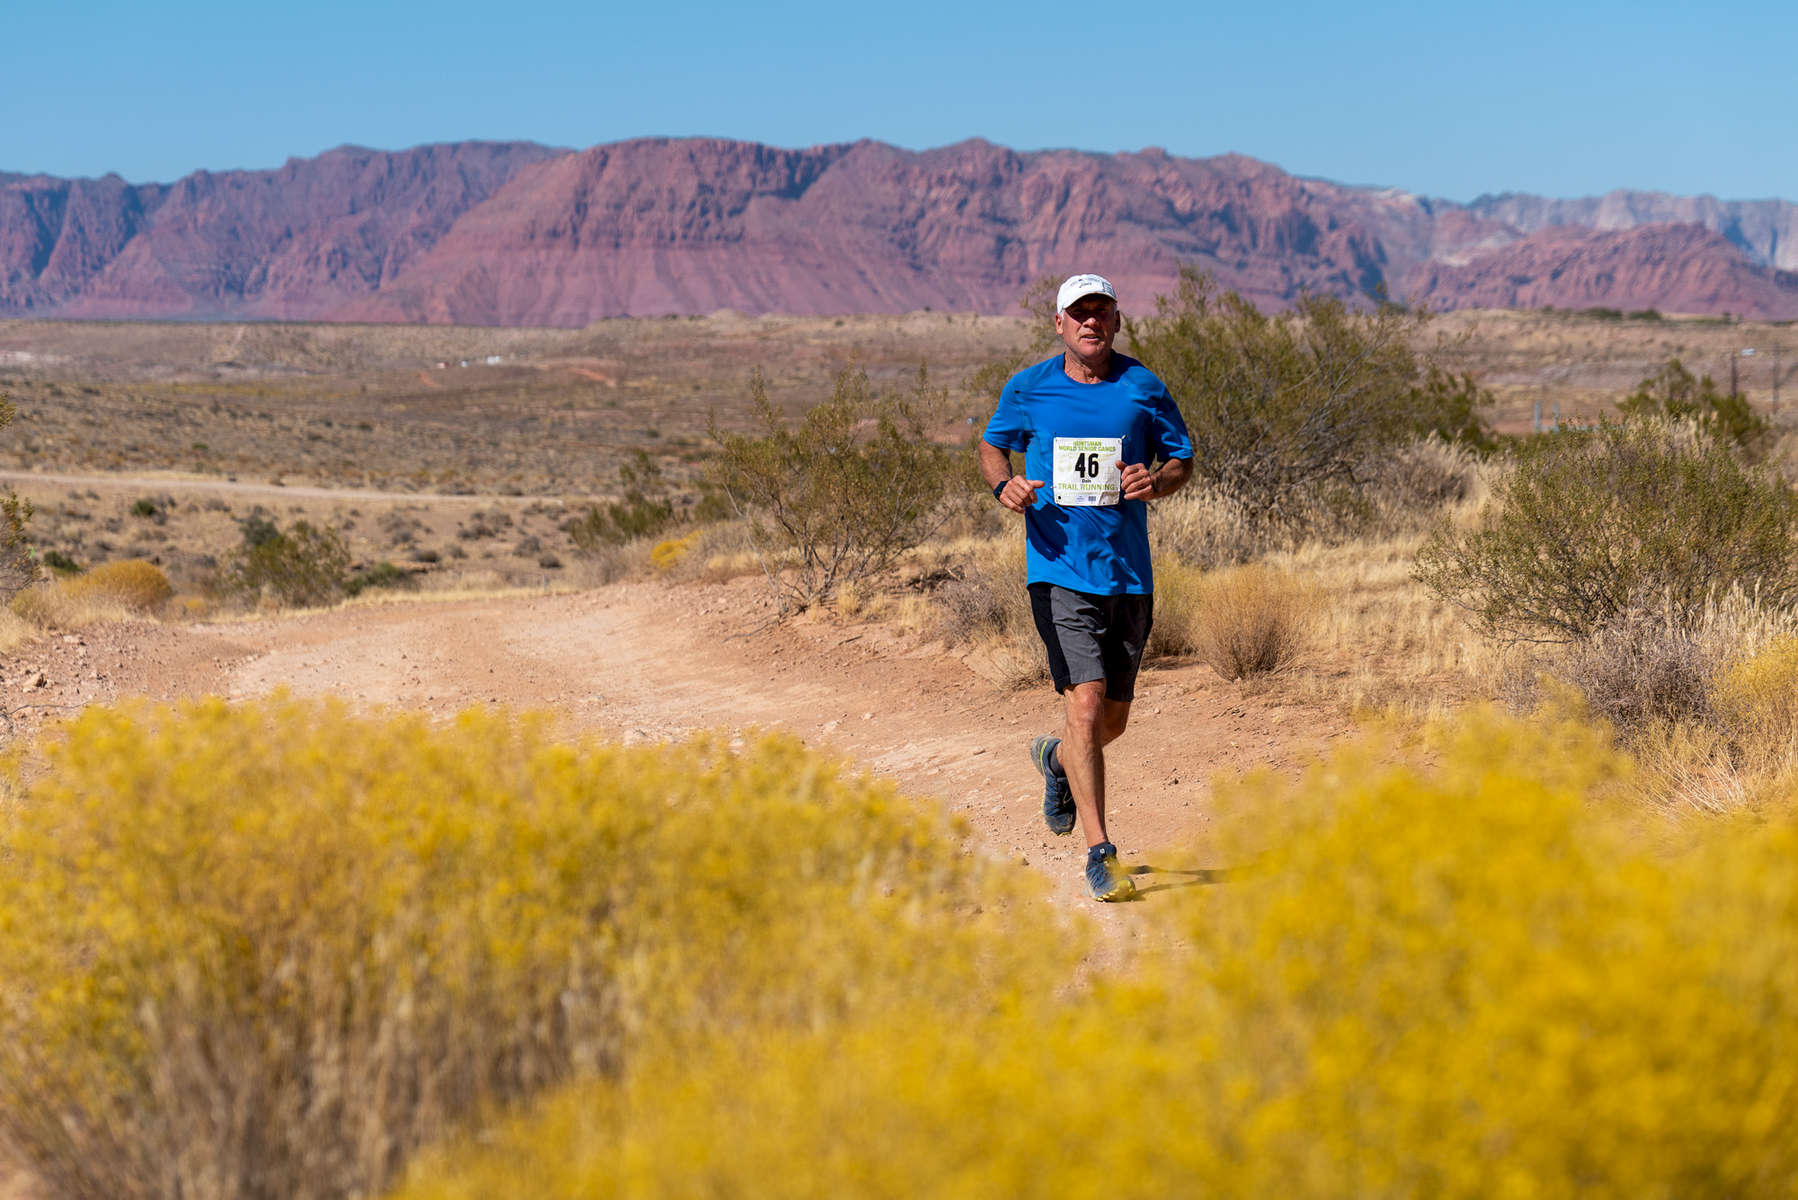 Senior athlete Dale McAllister competes in the Trail Race during the Huntsman World Senior Games on October 12, 2019 in St. George, Utah.